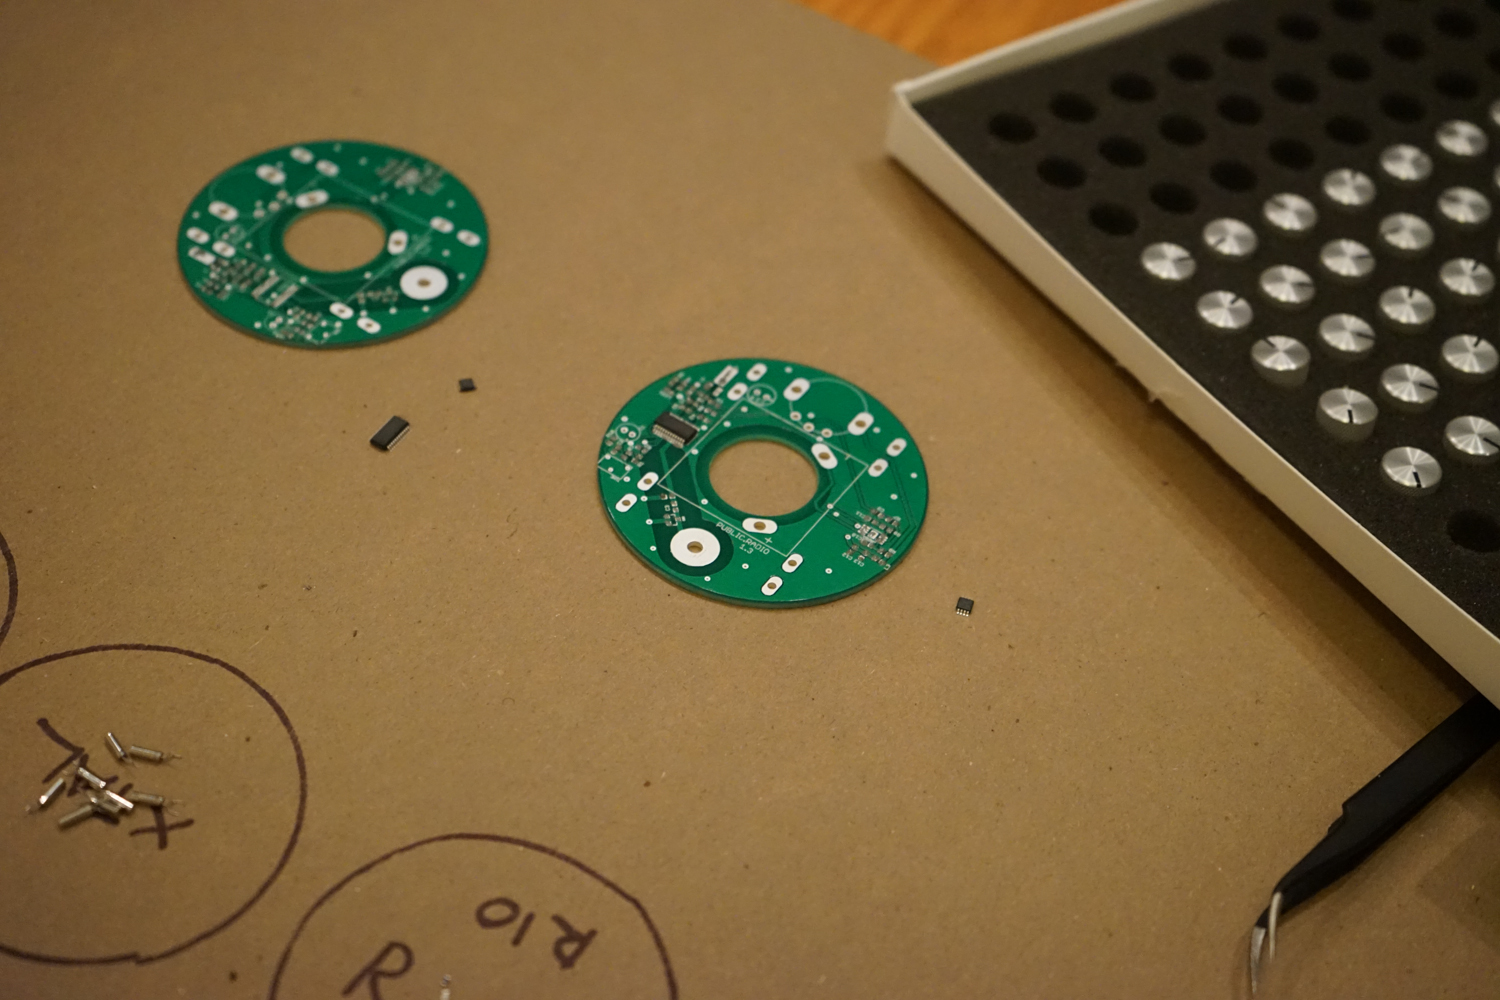 Partially assembled boards. Our knobs showed up too; they're looking really pretty :)